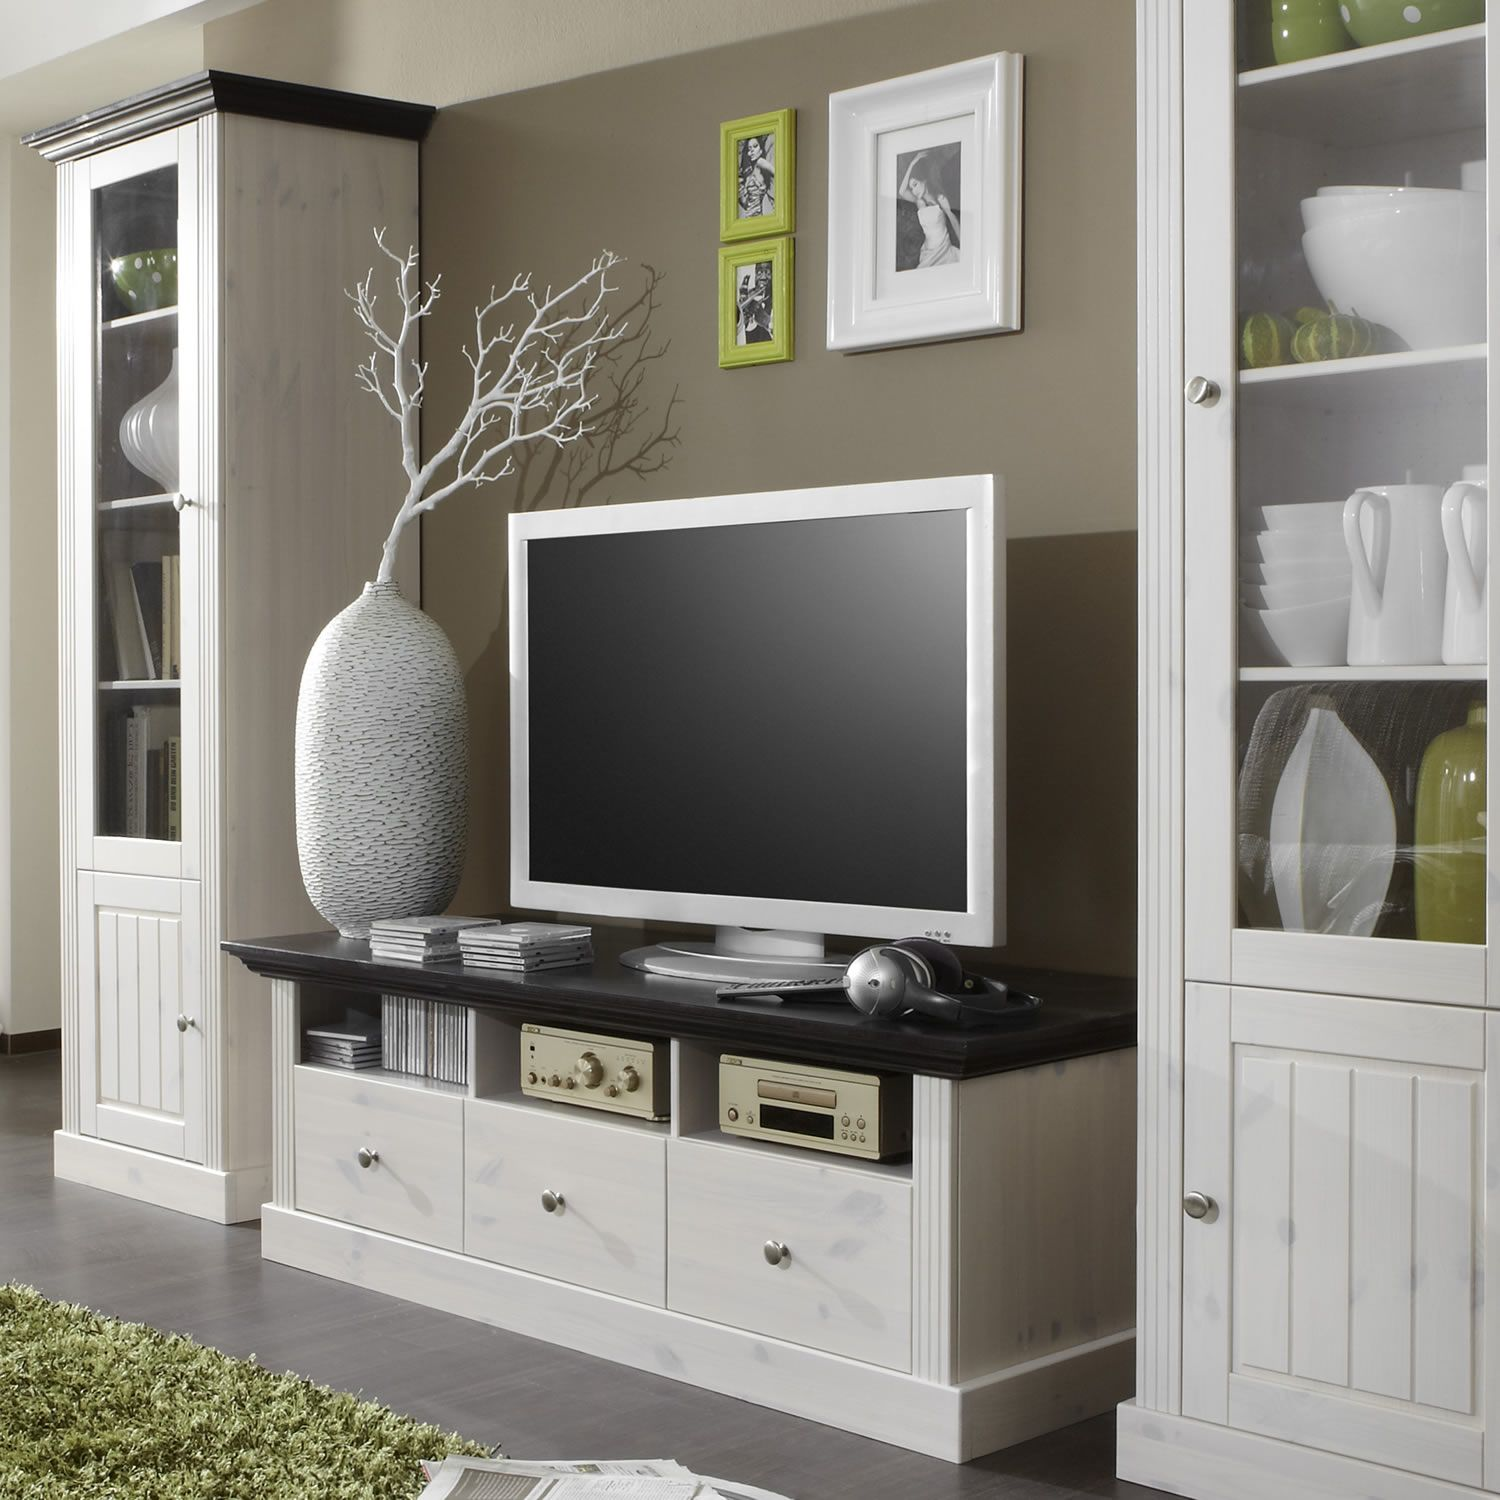 Steens Monaco Tv Unit Next Day Delivery Steens Monaco Tv Unit From Worldstores Everything For Home Interior Design Country House Interior Country Furniture #wall #cabinet #design #living #room